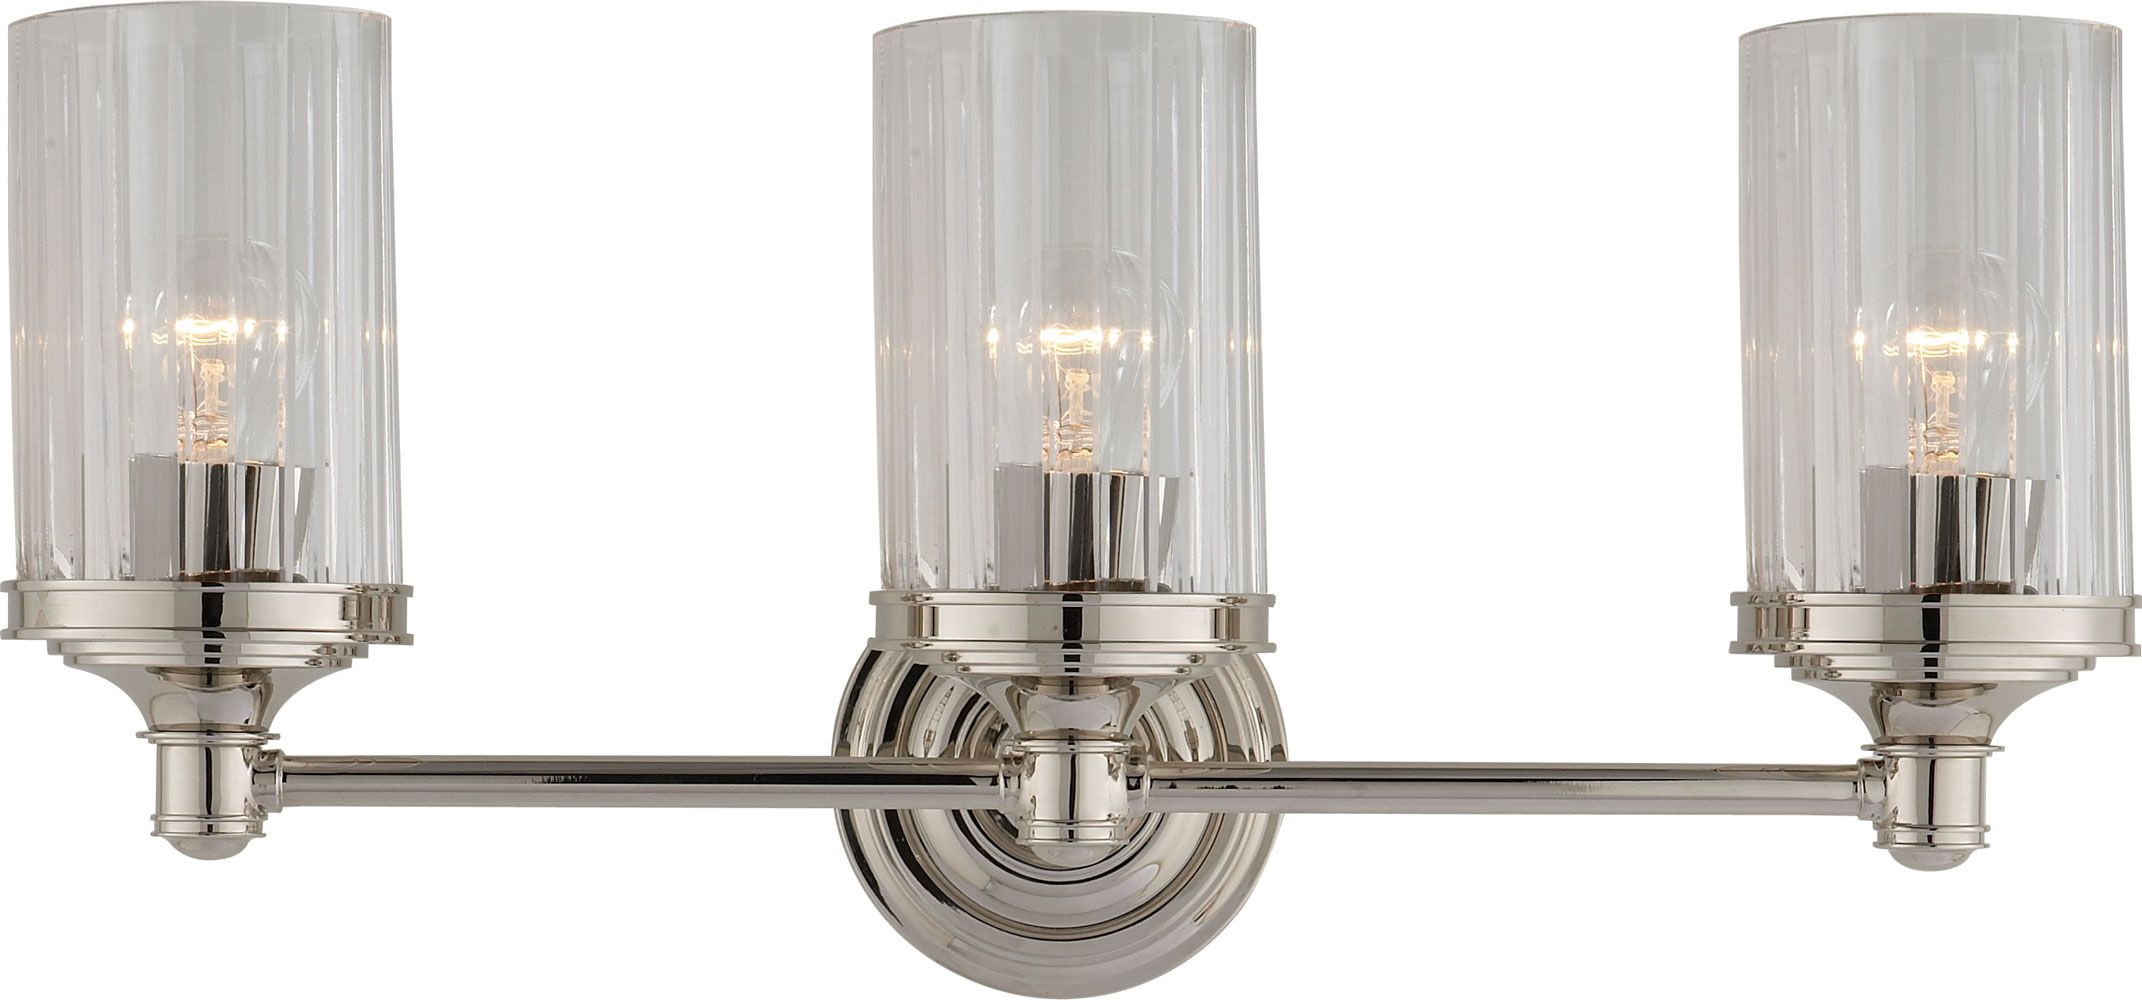 For Bathroom Lighting Over Mirror Circa Lighting AVA TRIPLE - Triple sconce bathroom lighting